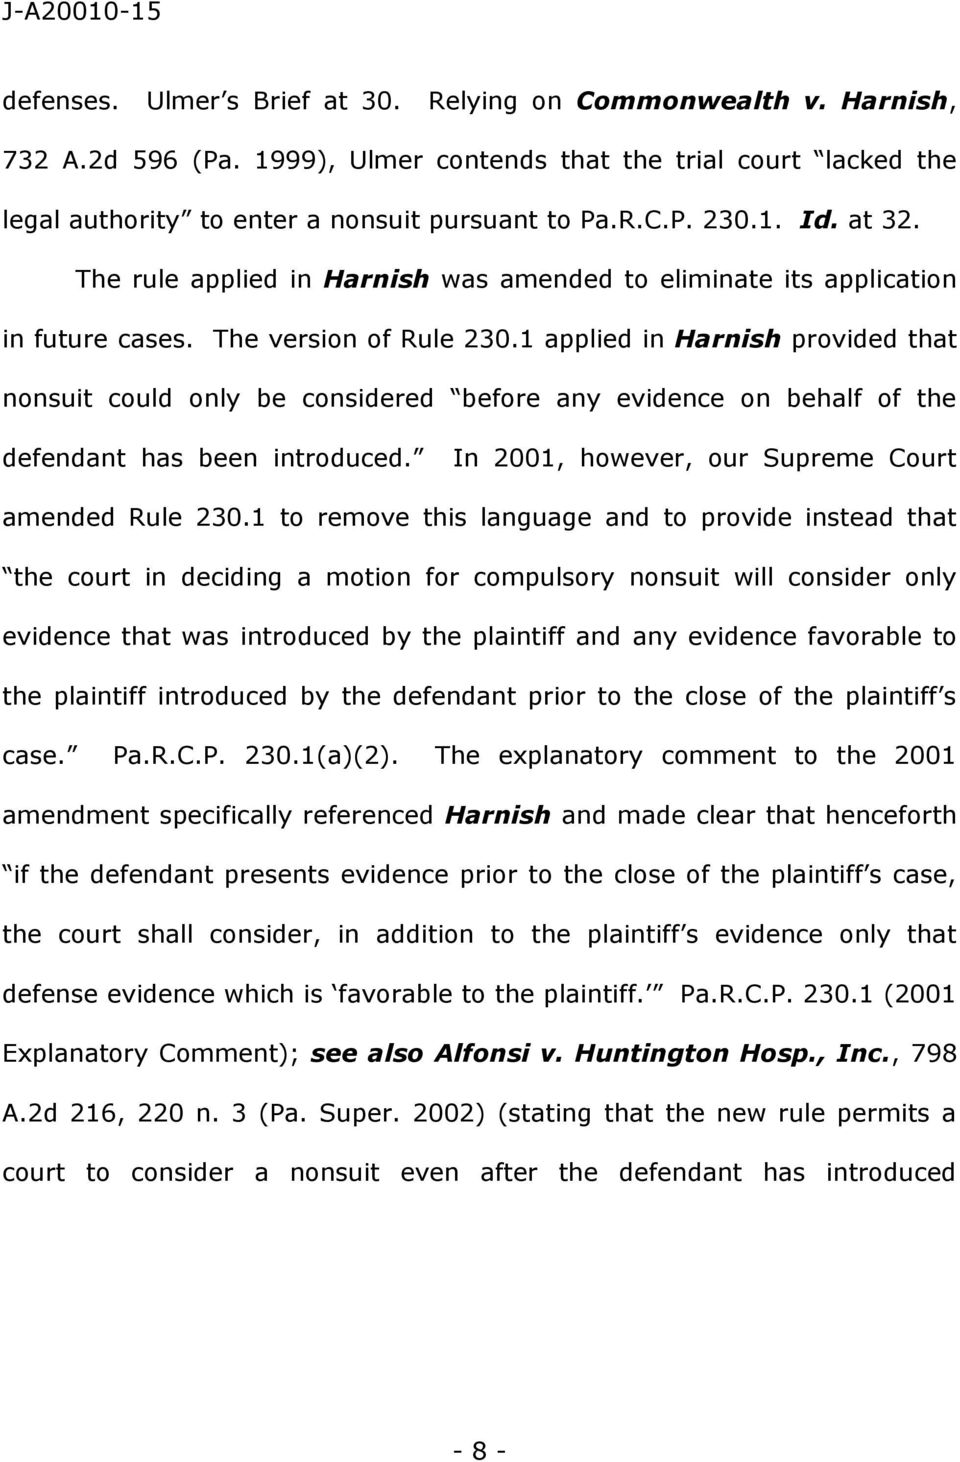 1 applied in Harnish provided that nonsuit could only be considered before any evidence on behalf of the defendant has been introduced. In 2001, however, our Supreme Court amended Rule 230.